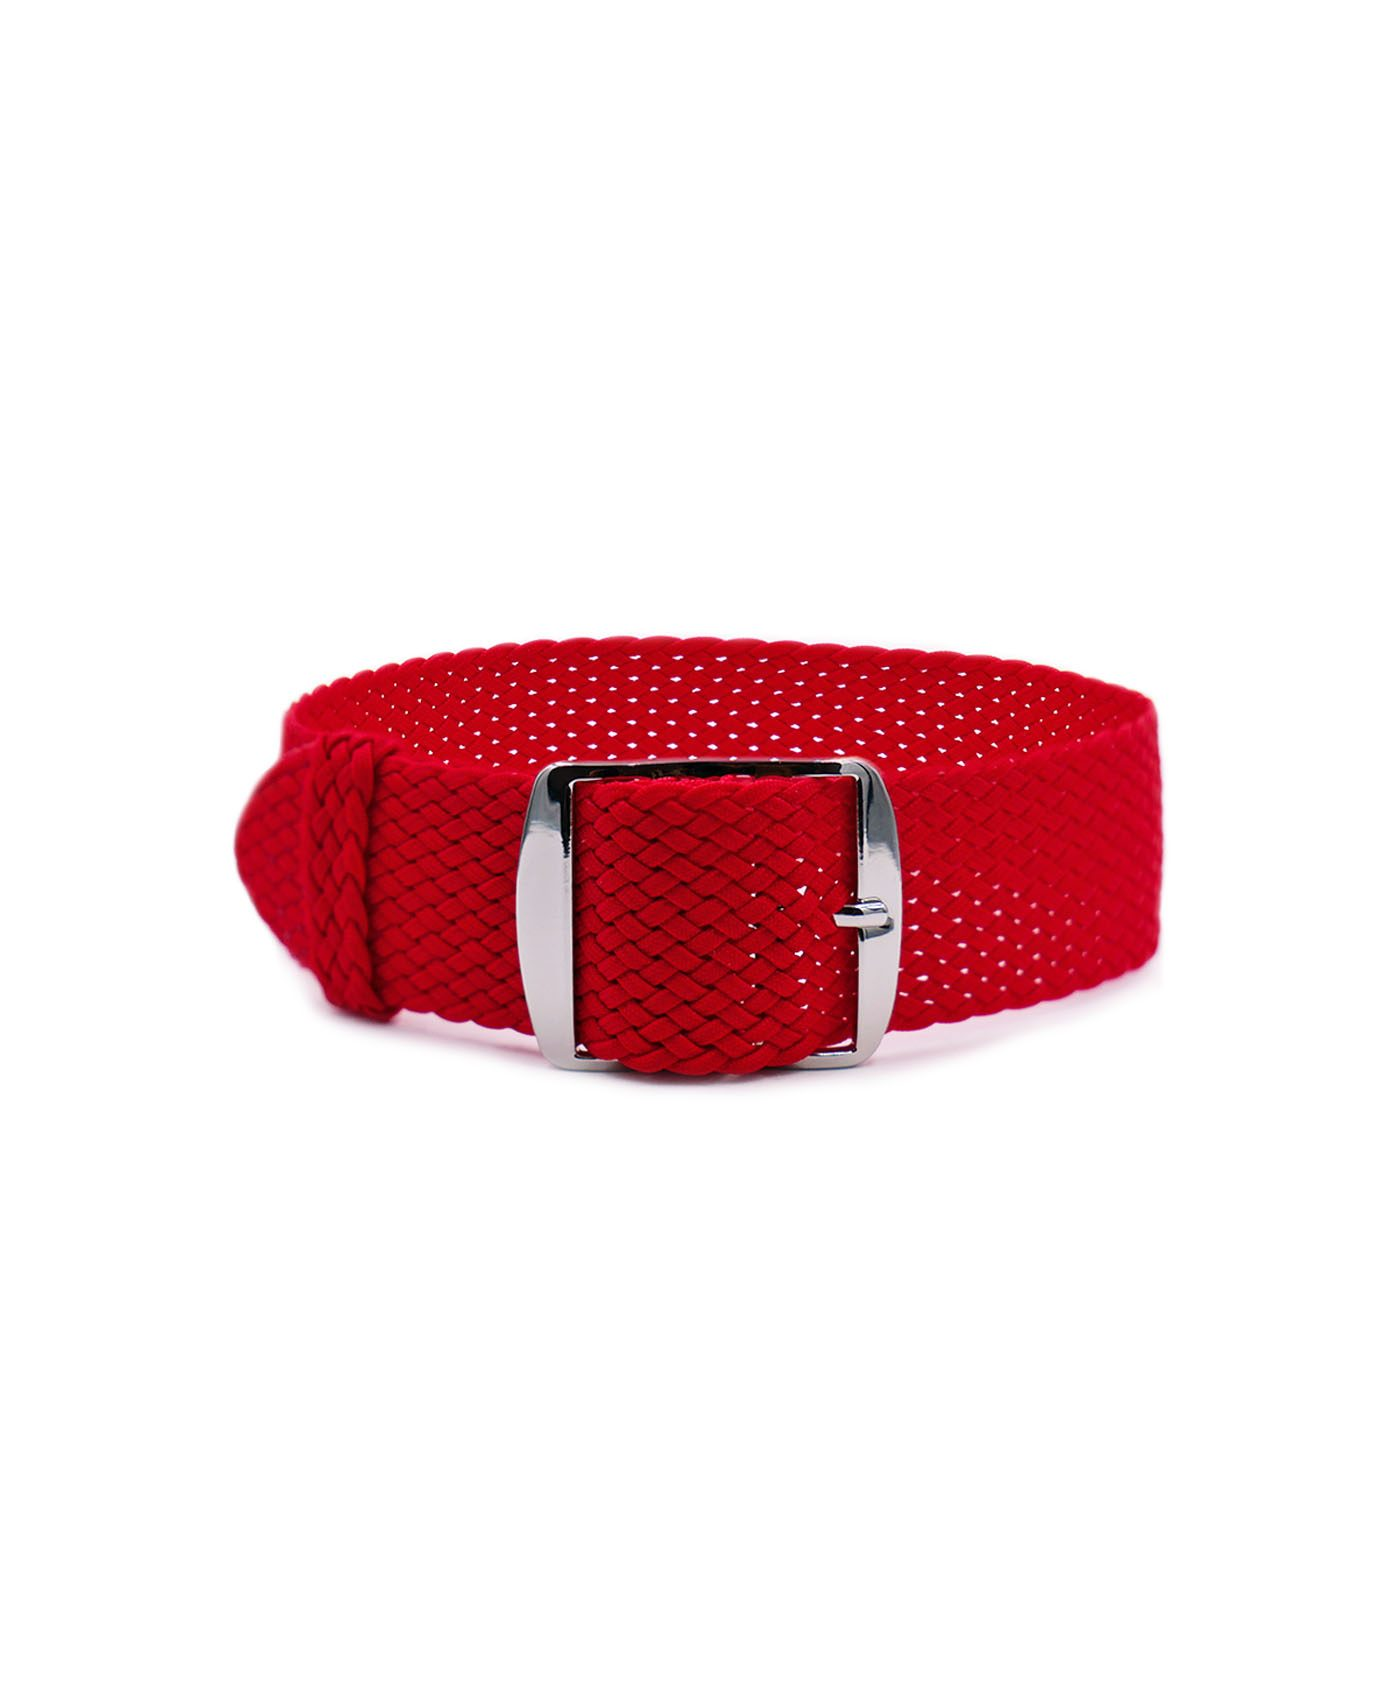 Watchbandit Premium Perlon Watch strap red